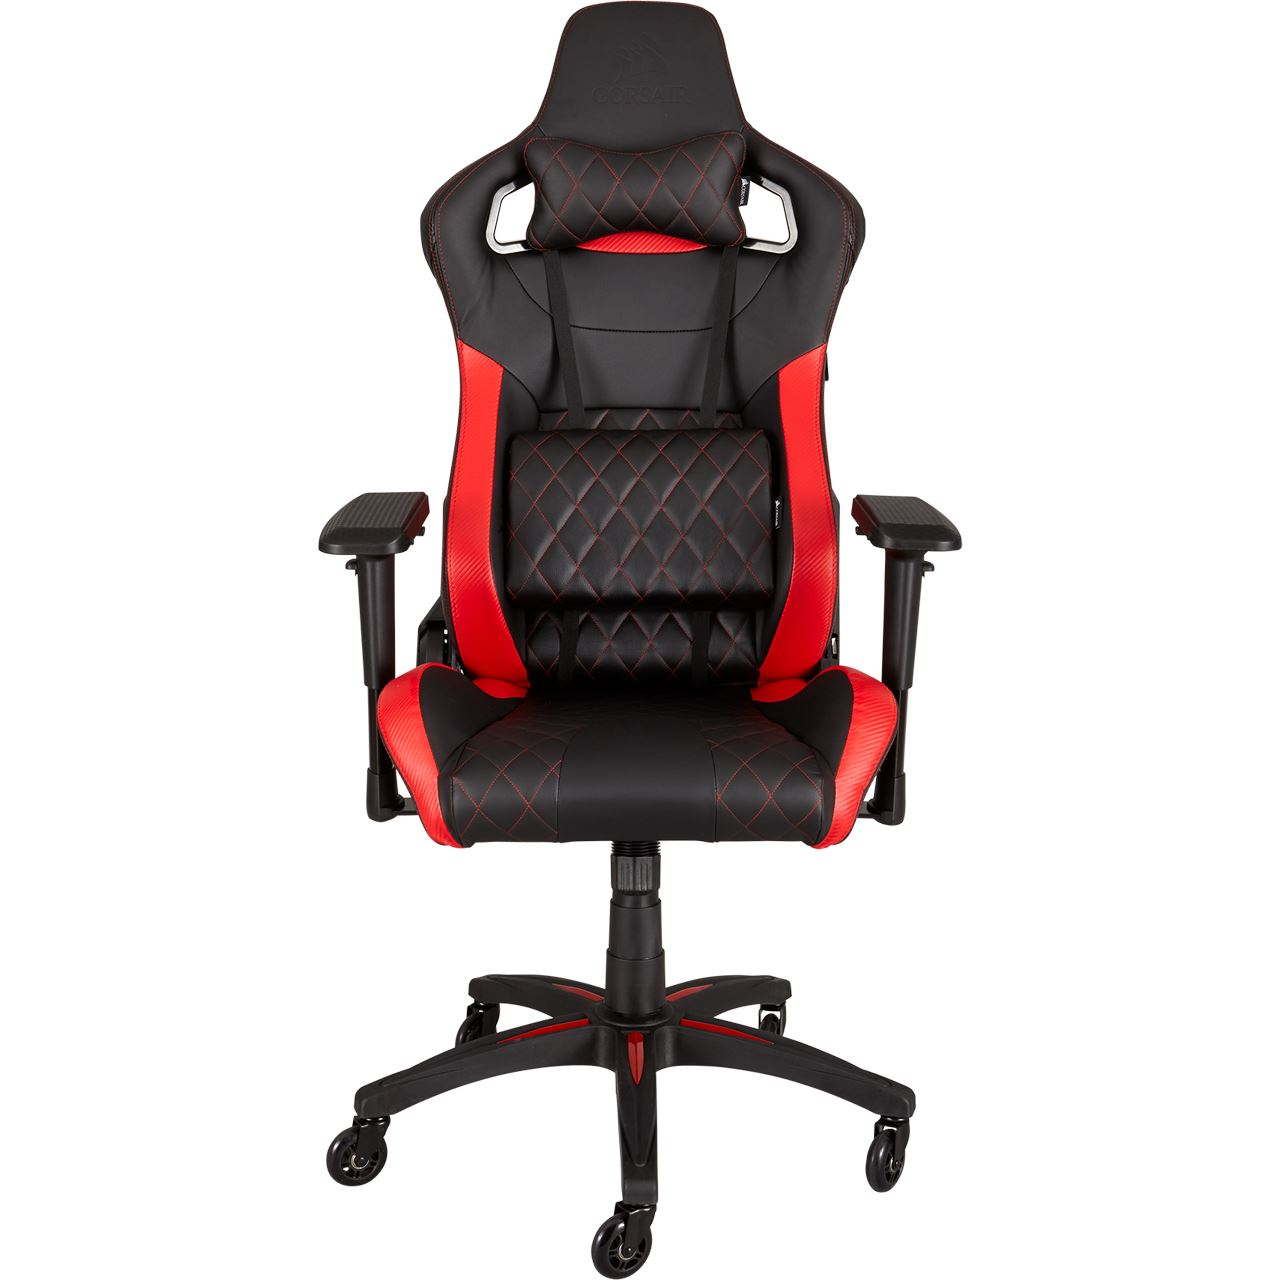 corsair t1 race gaming chair schwarz rot gaming seats. Black Bedroom Furniture Sets. Home Design Ideas